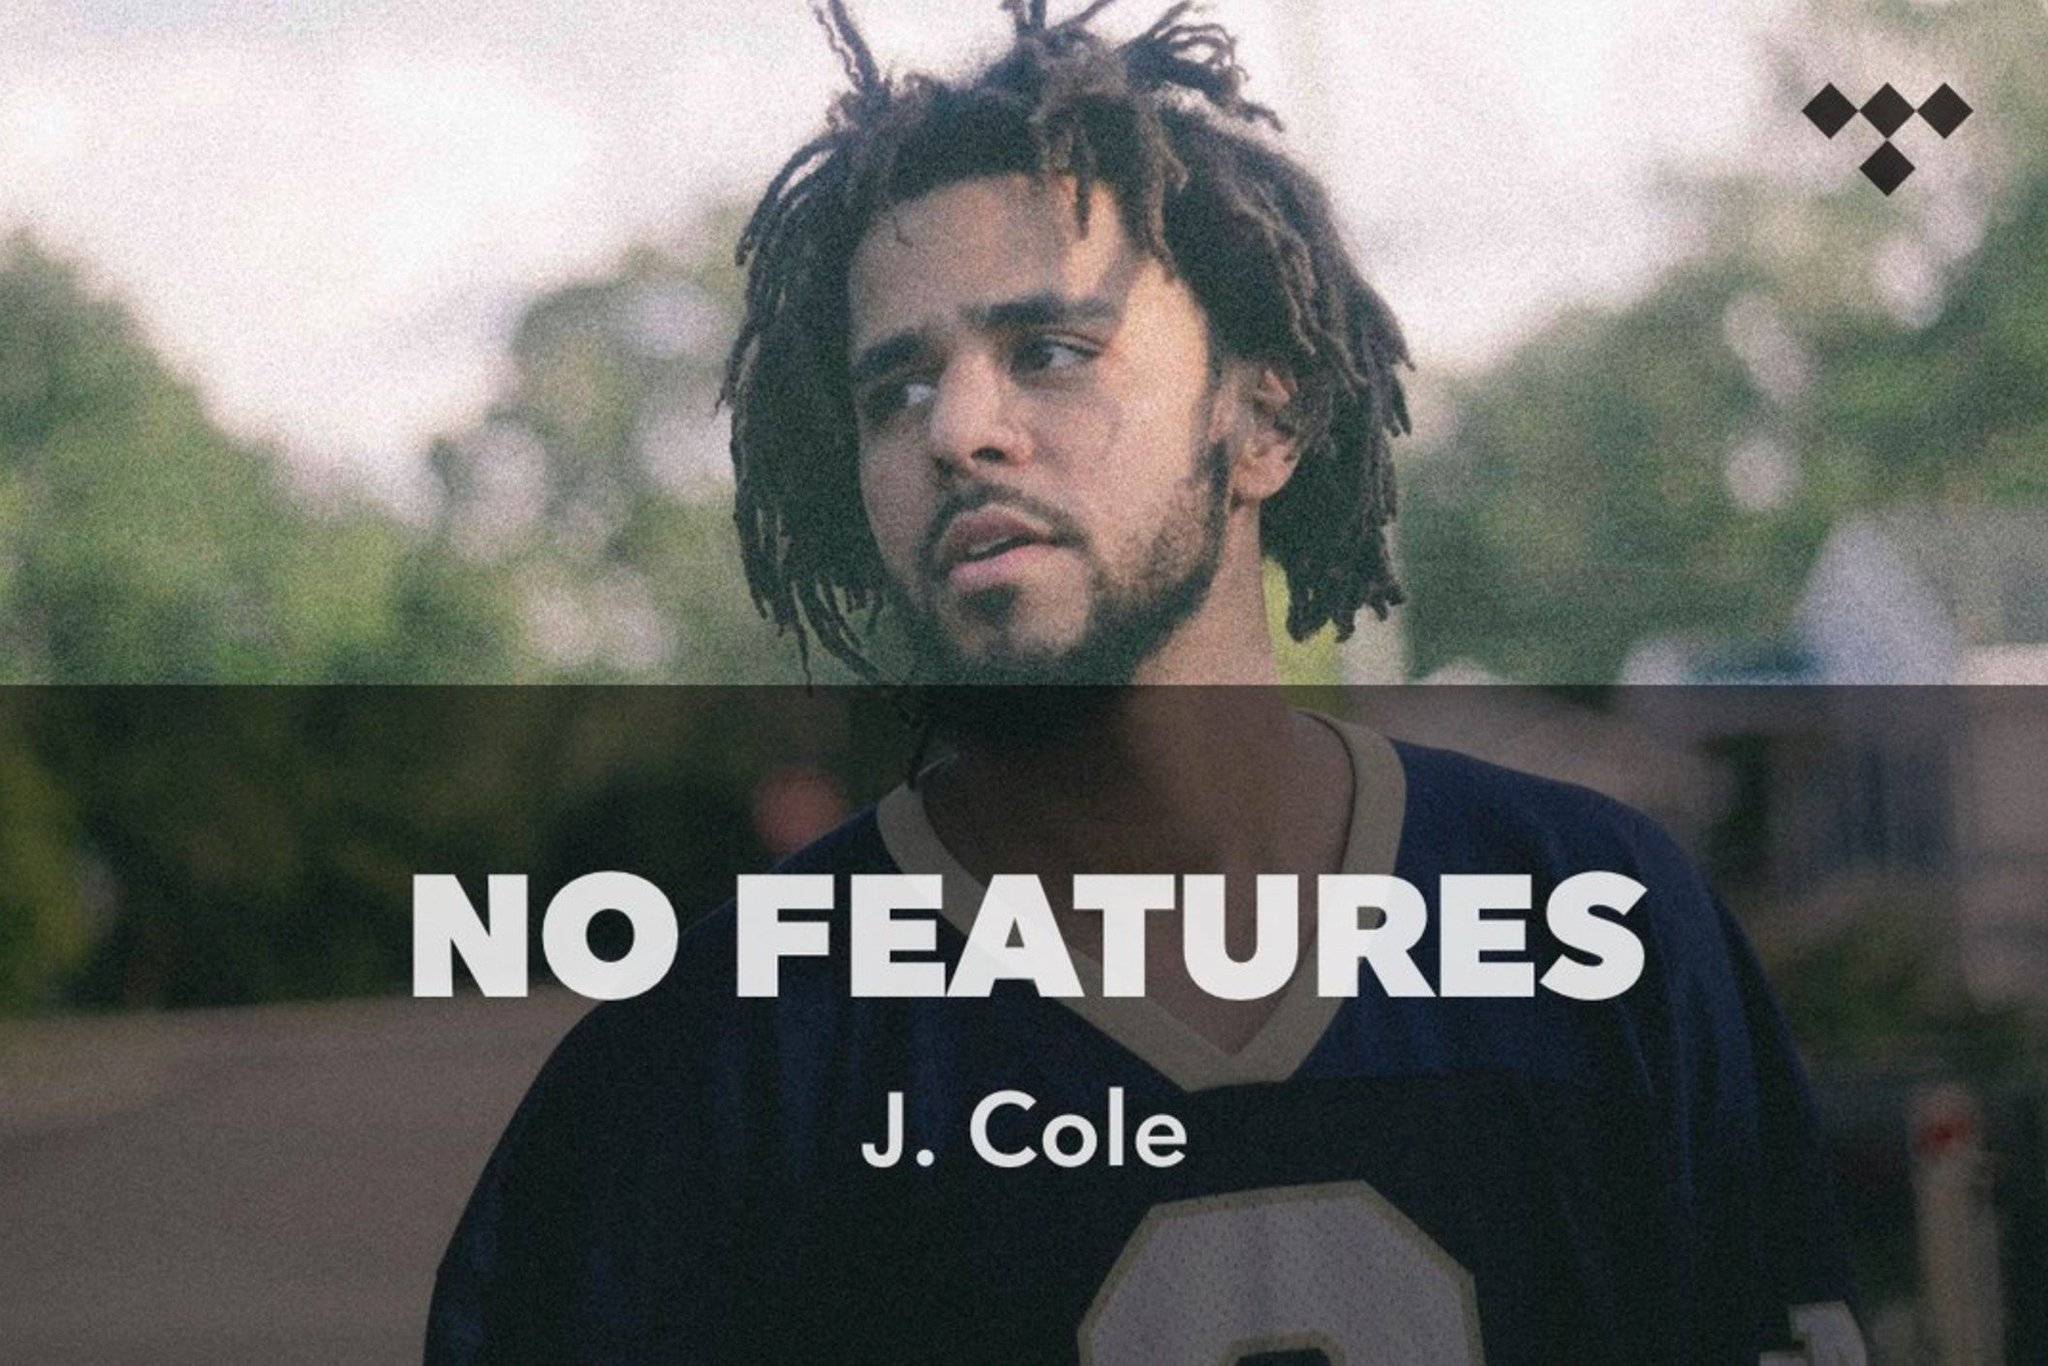 No Features: J. Cole https://t.co/j93wrzK16U #TIDAL https://t.co/UUavF2WWtz